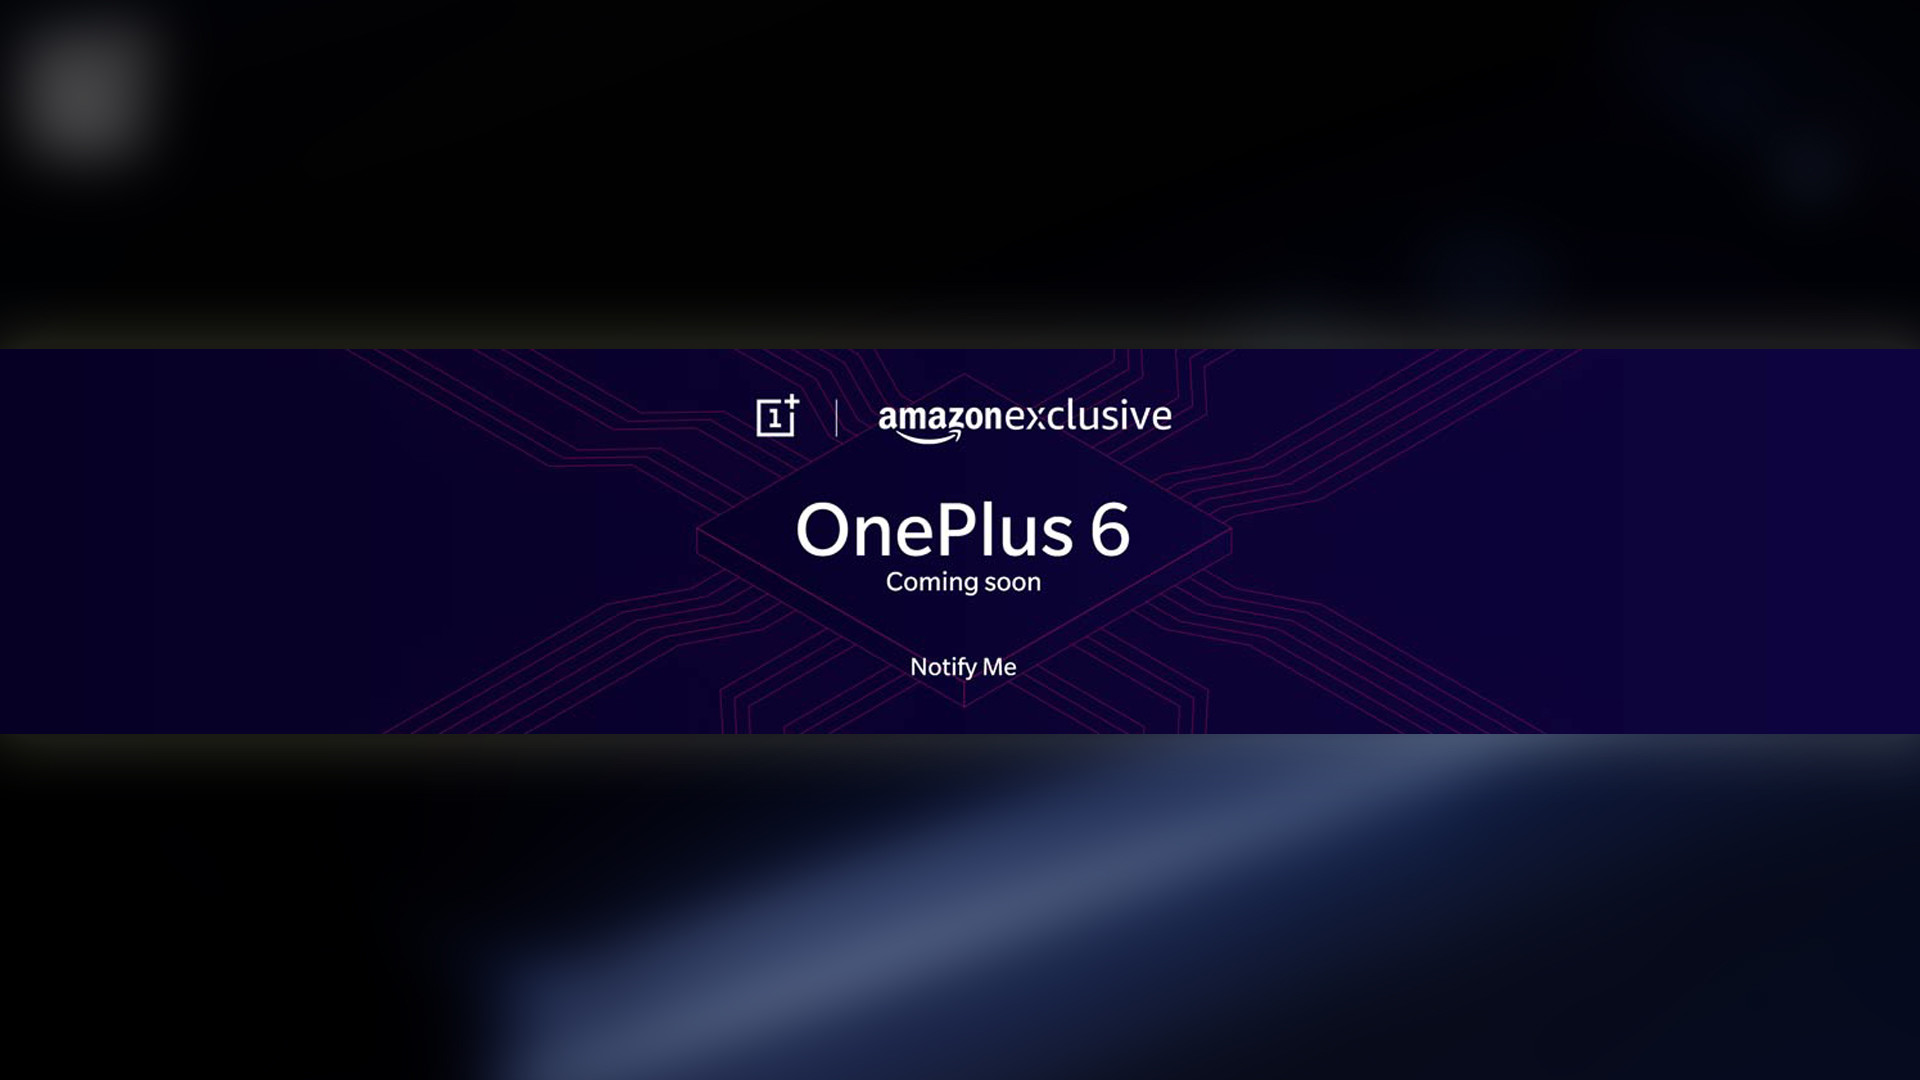 OnePlus 6 Amazon India Page Listing is Live with 'Notify Me' Option